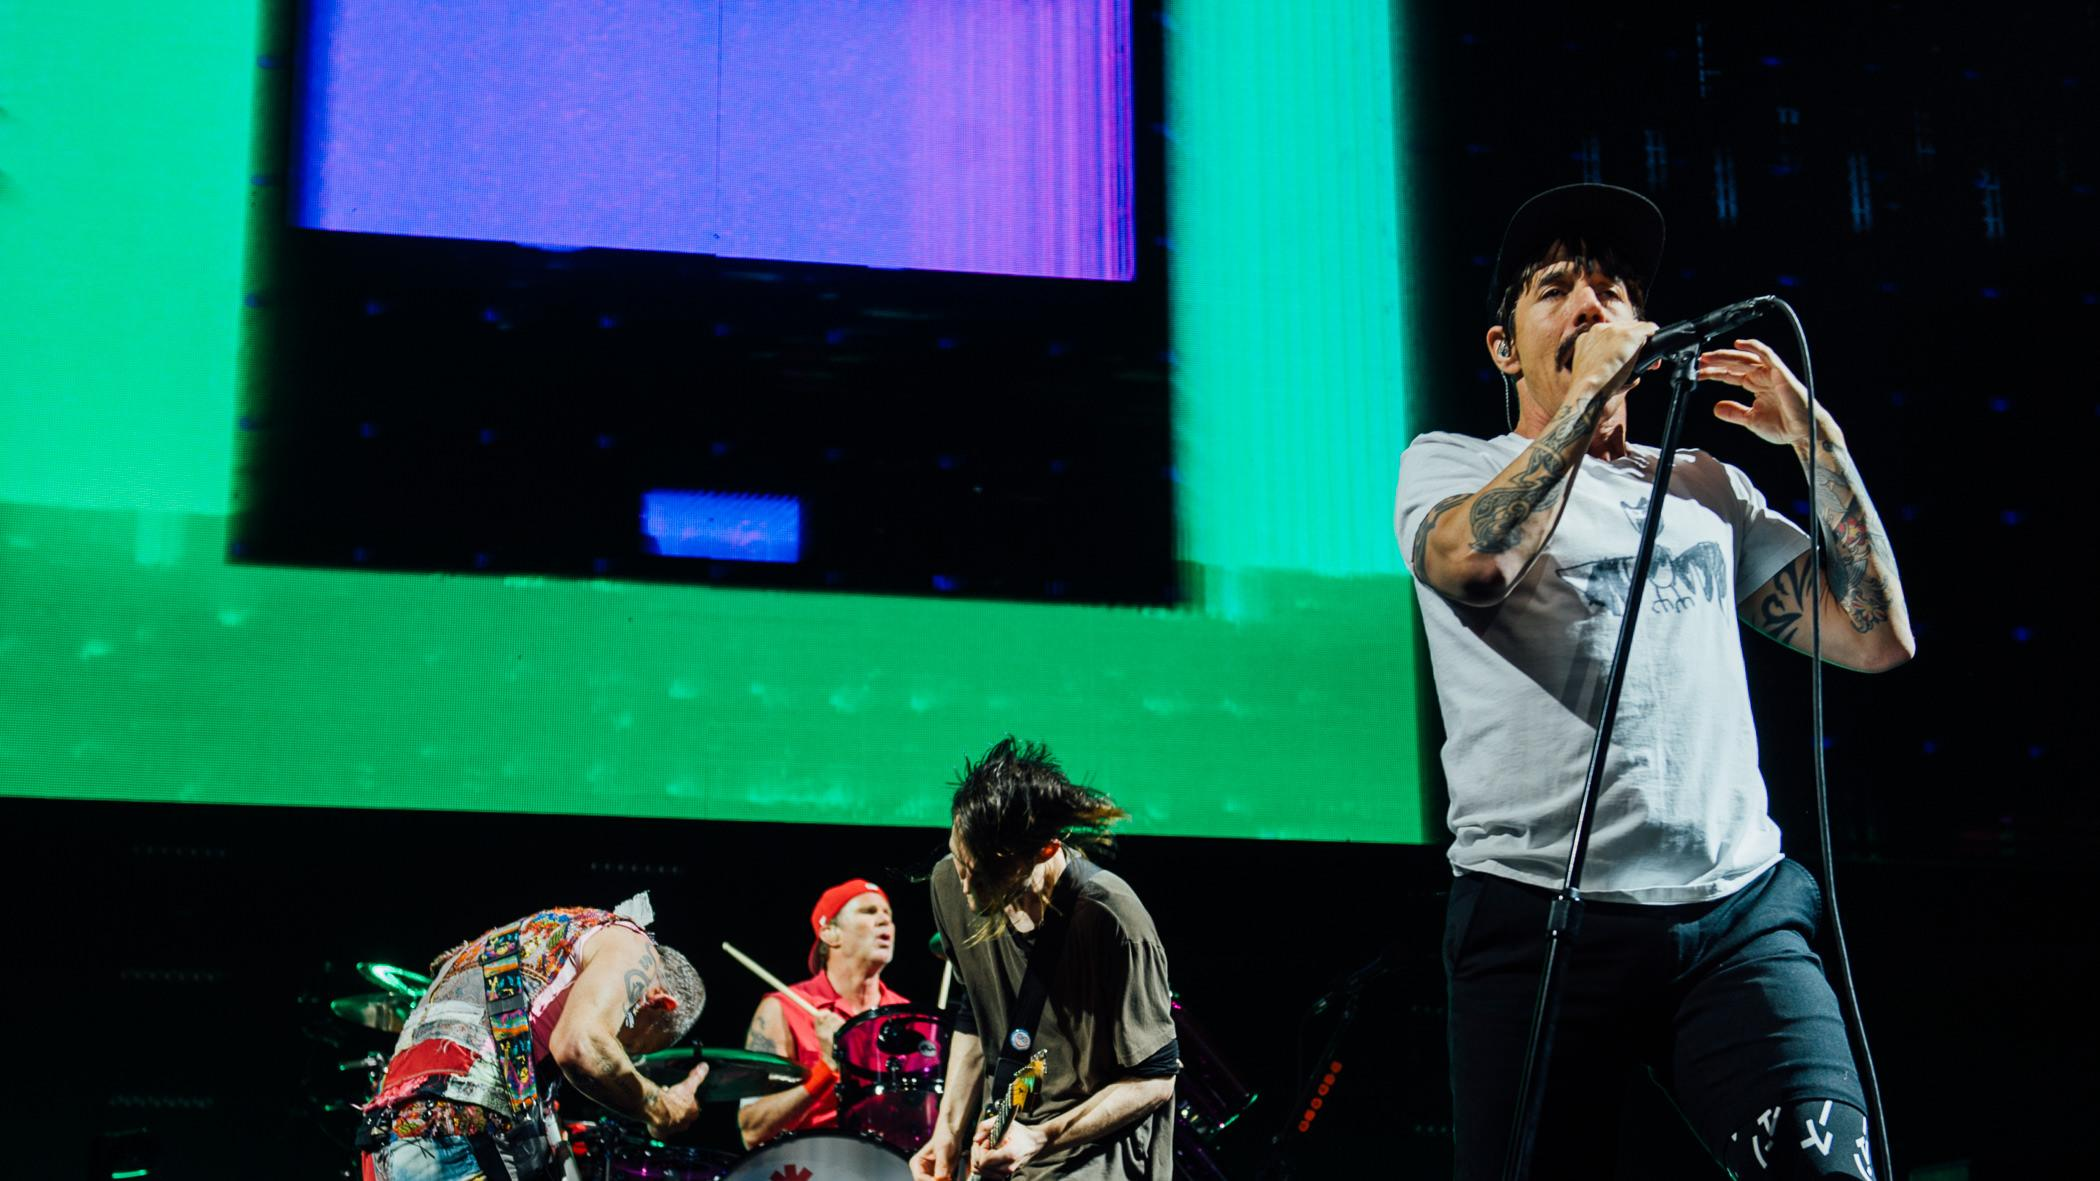 Red Hot Chili Peppers reach higher ground in Vancouver (PHOTOS)